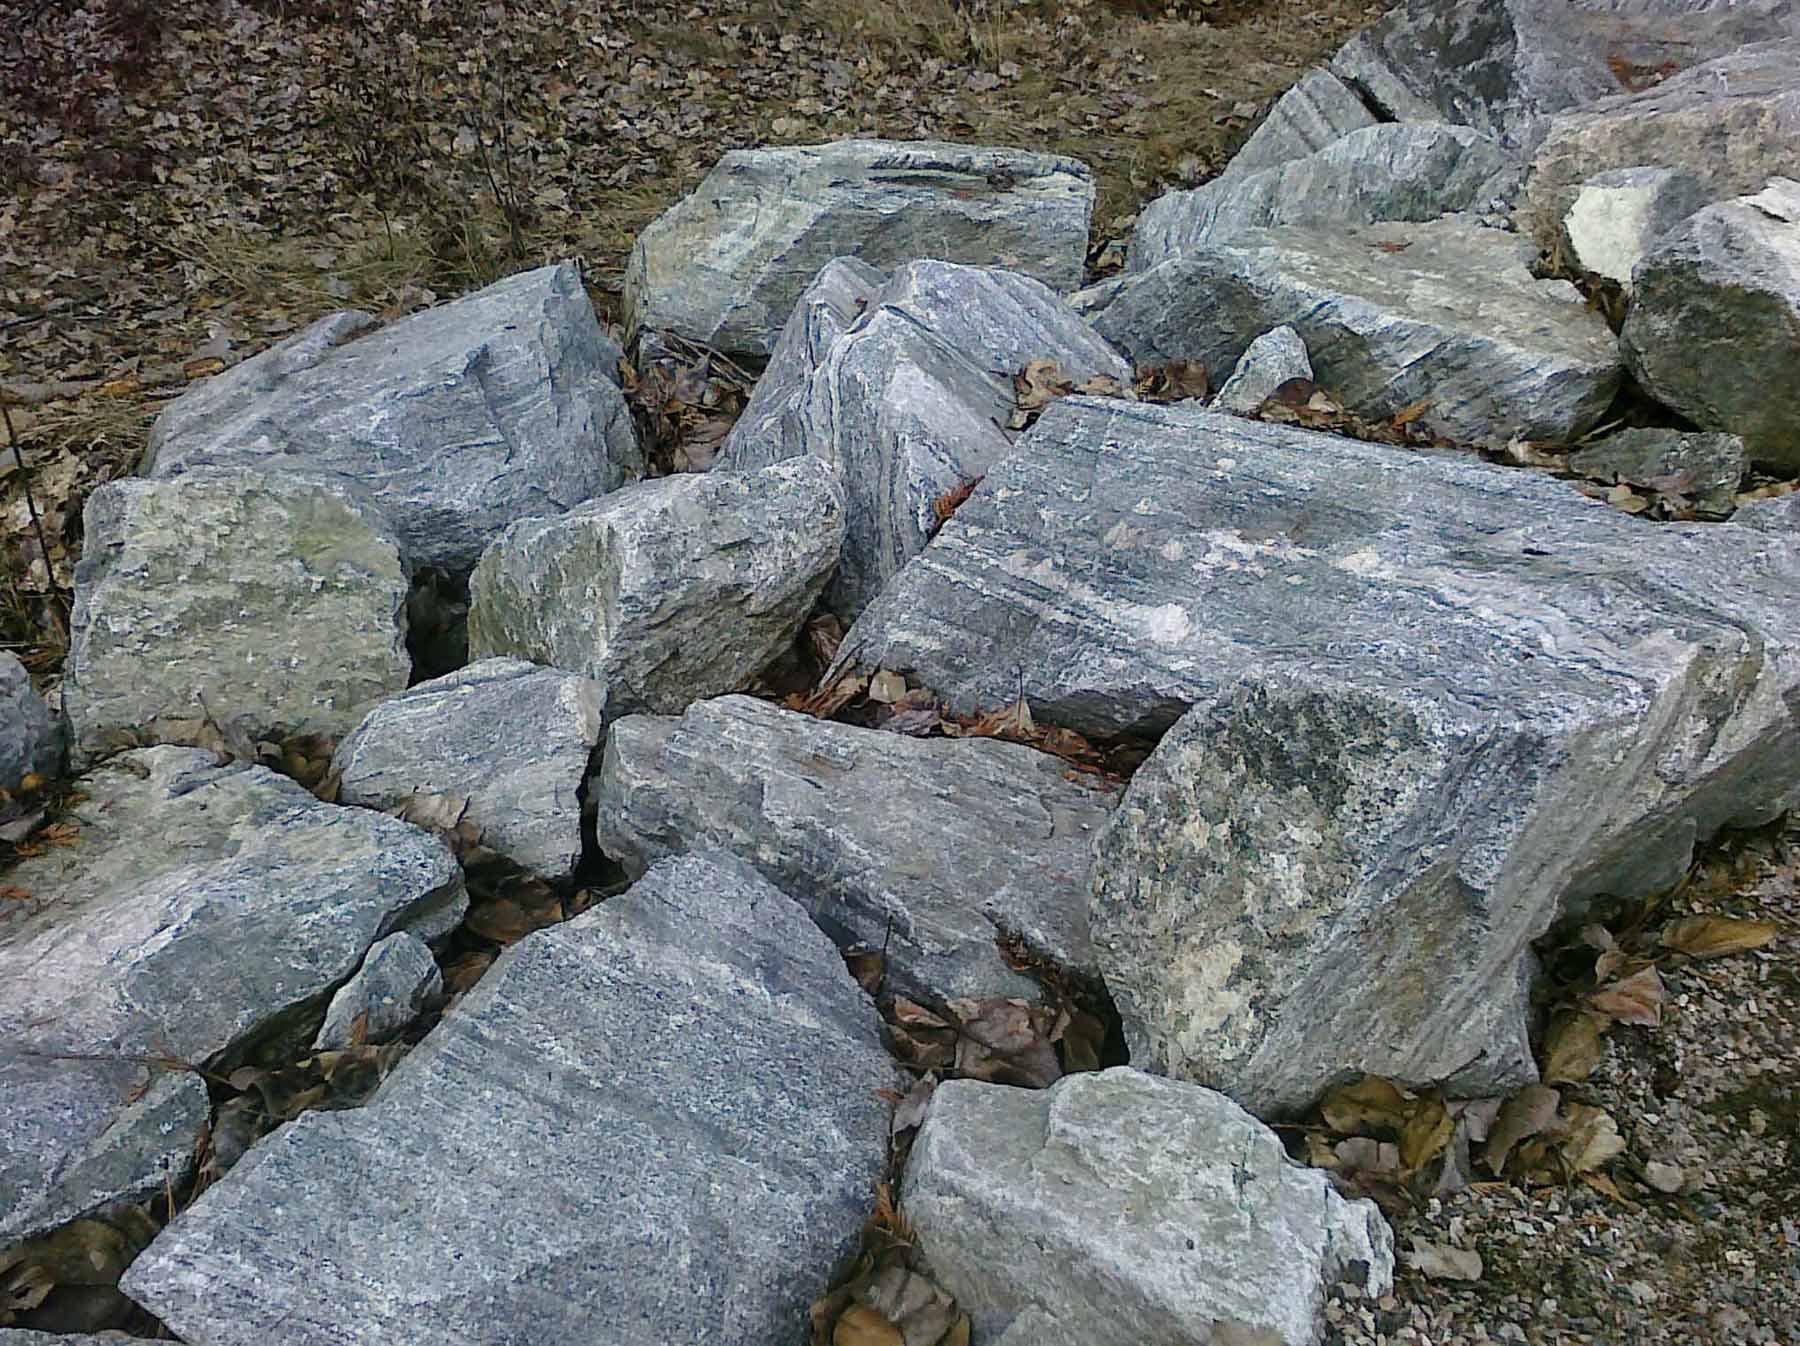 A group of grey boulders and stones